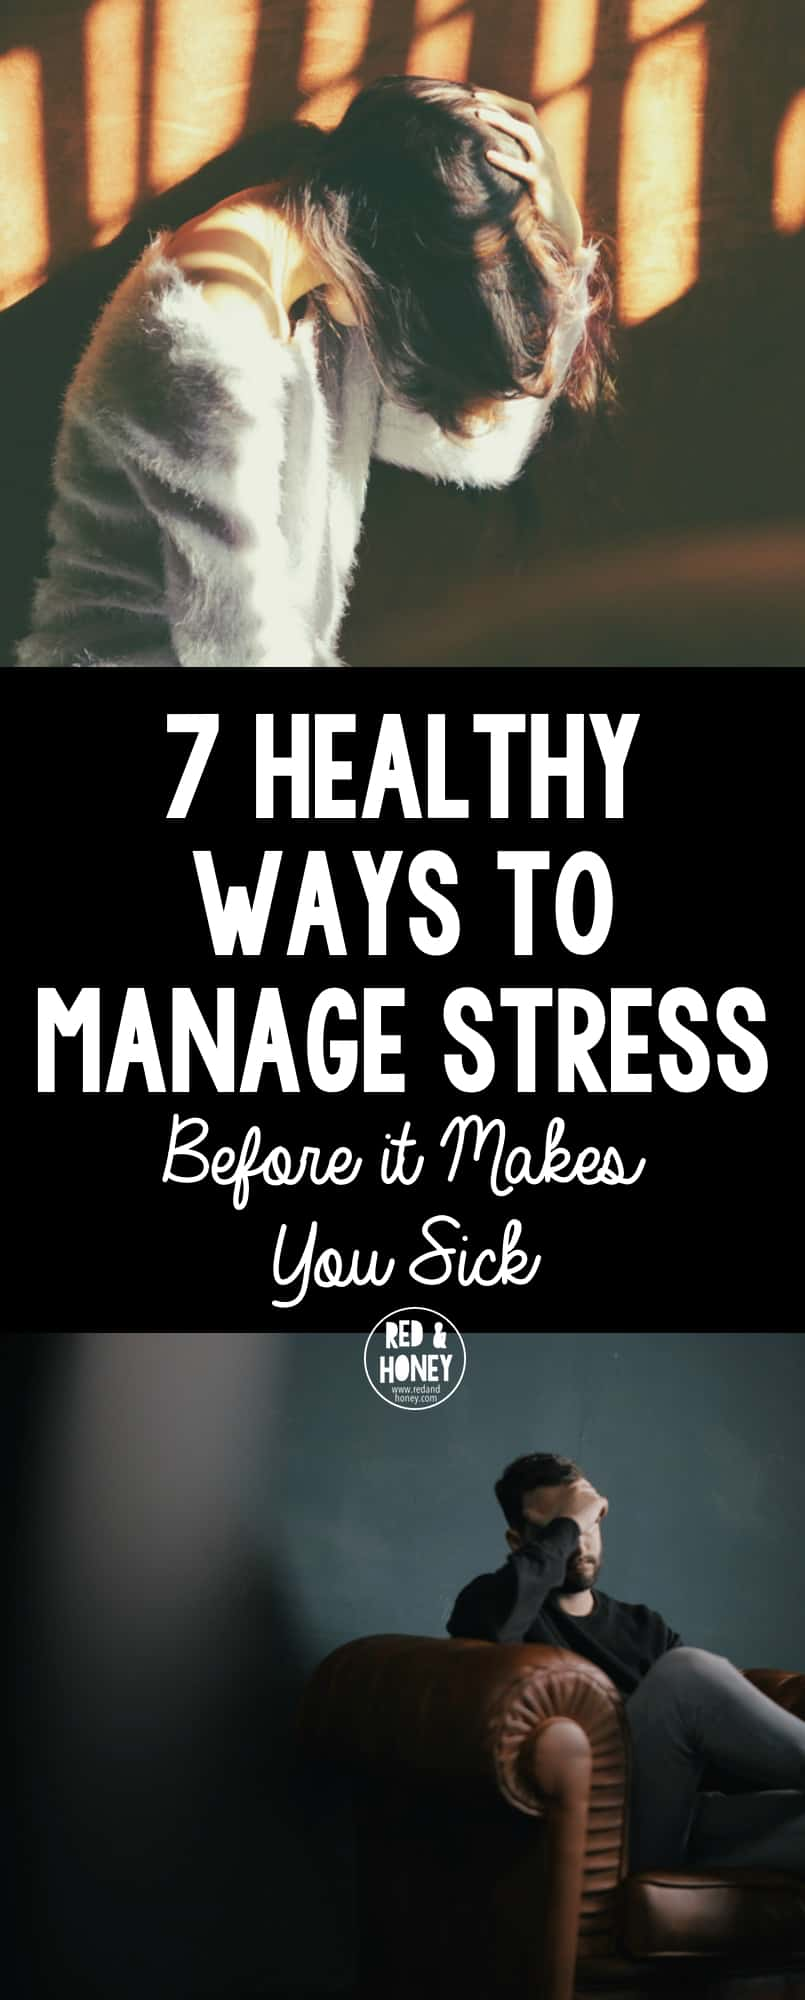 Stress is a powerful force, and if left unmanaged, it can actually cause serious, long-term health concerns. These are the healthy stress management practices that we aim for in our home.